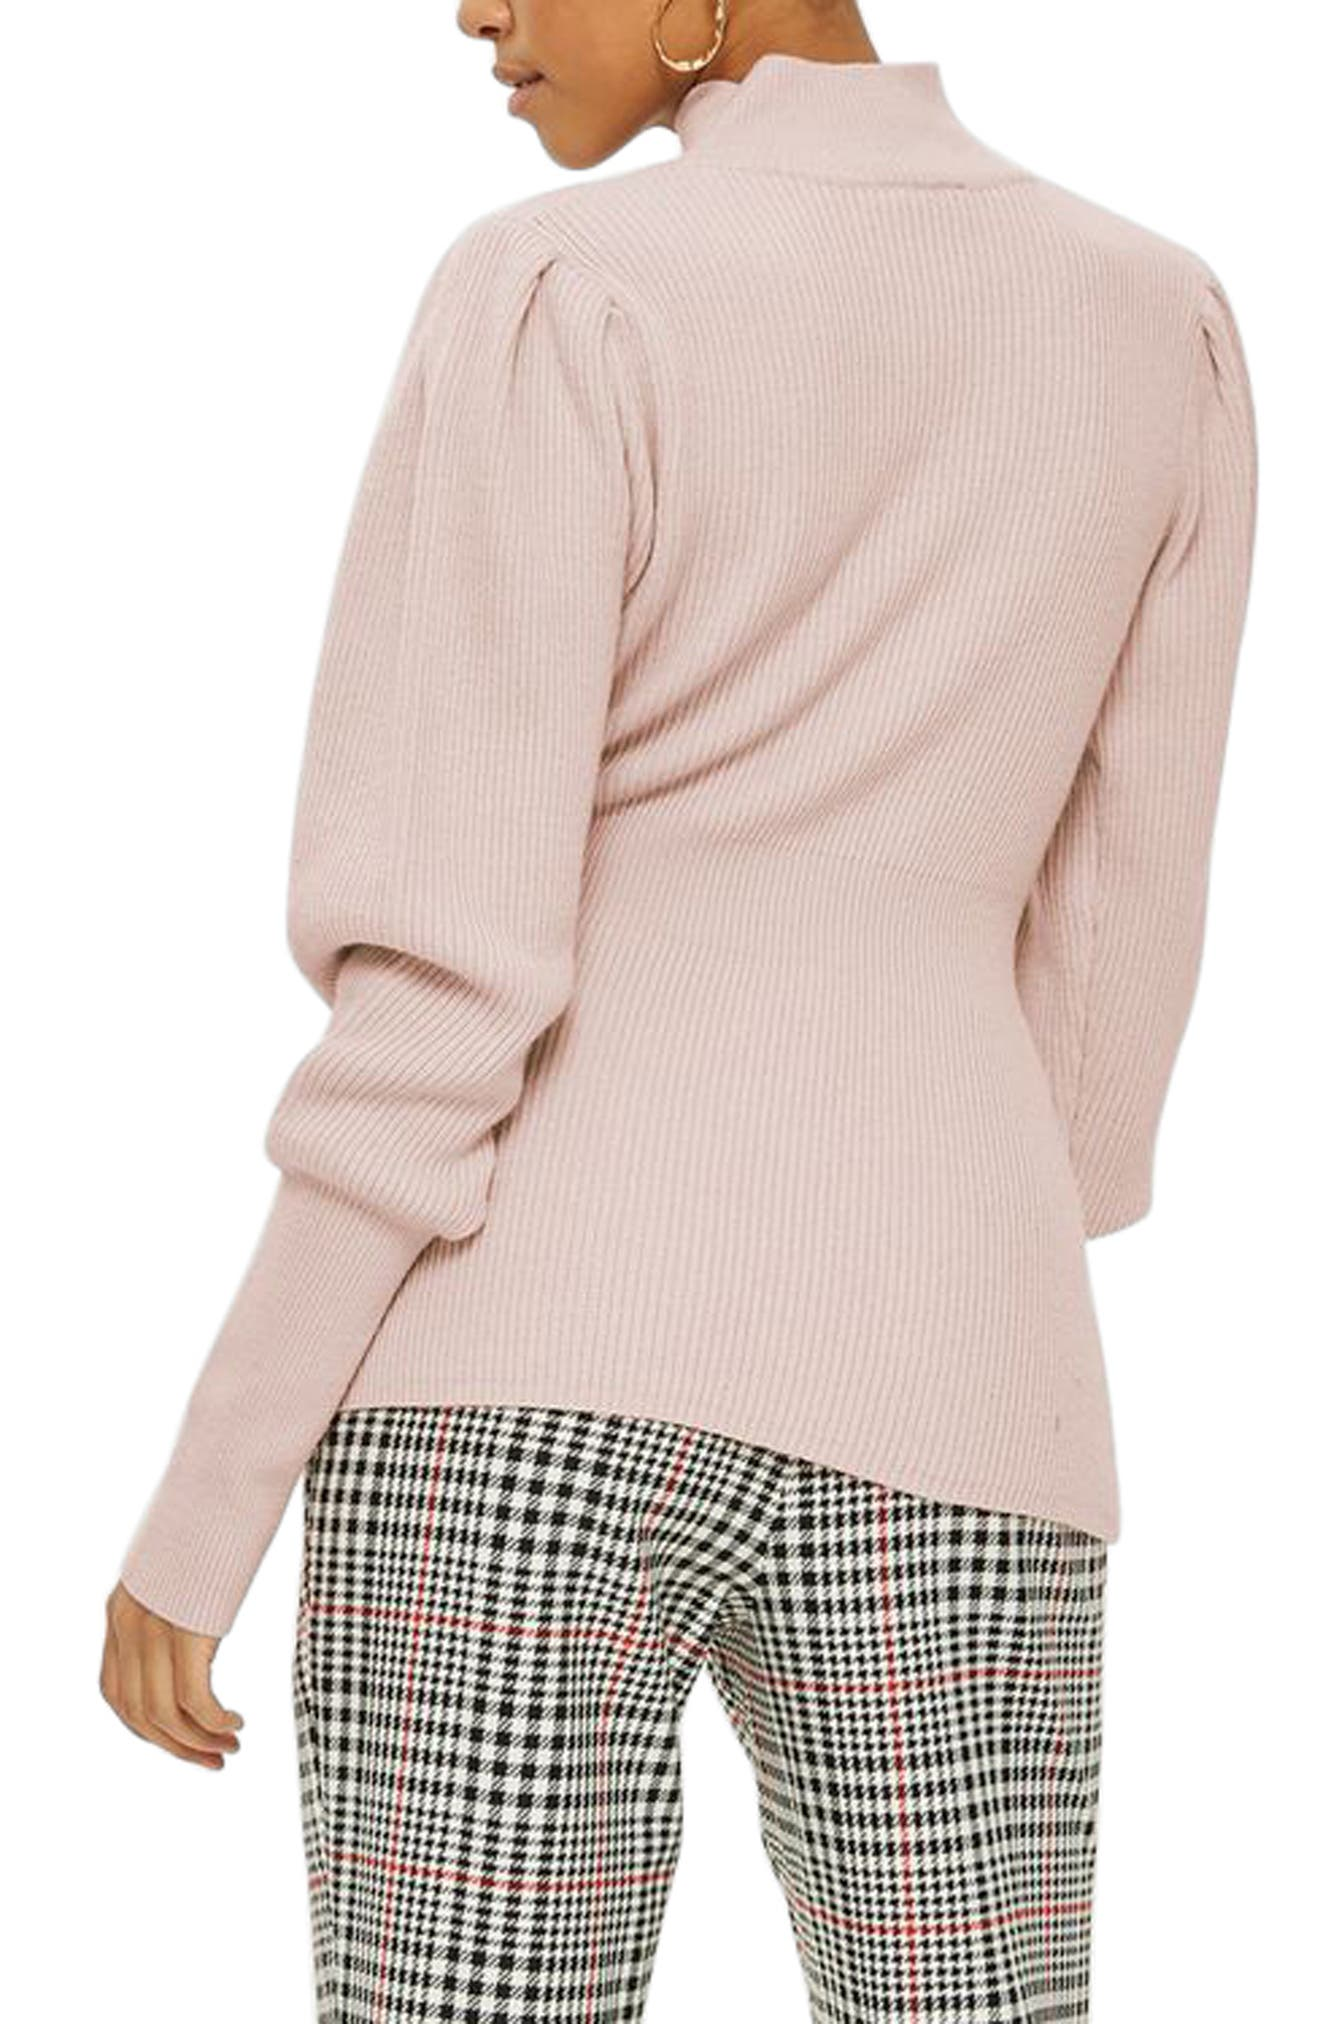 Puff Sleeve Funnel Neck Sweater,                             Alternate thumbnail 2, color,                             680